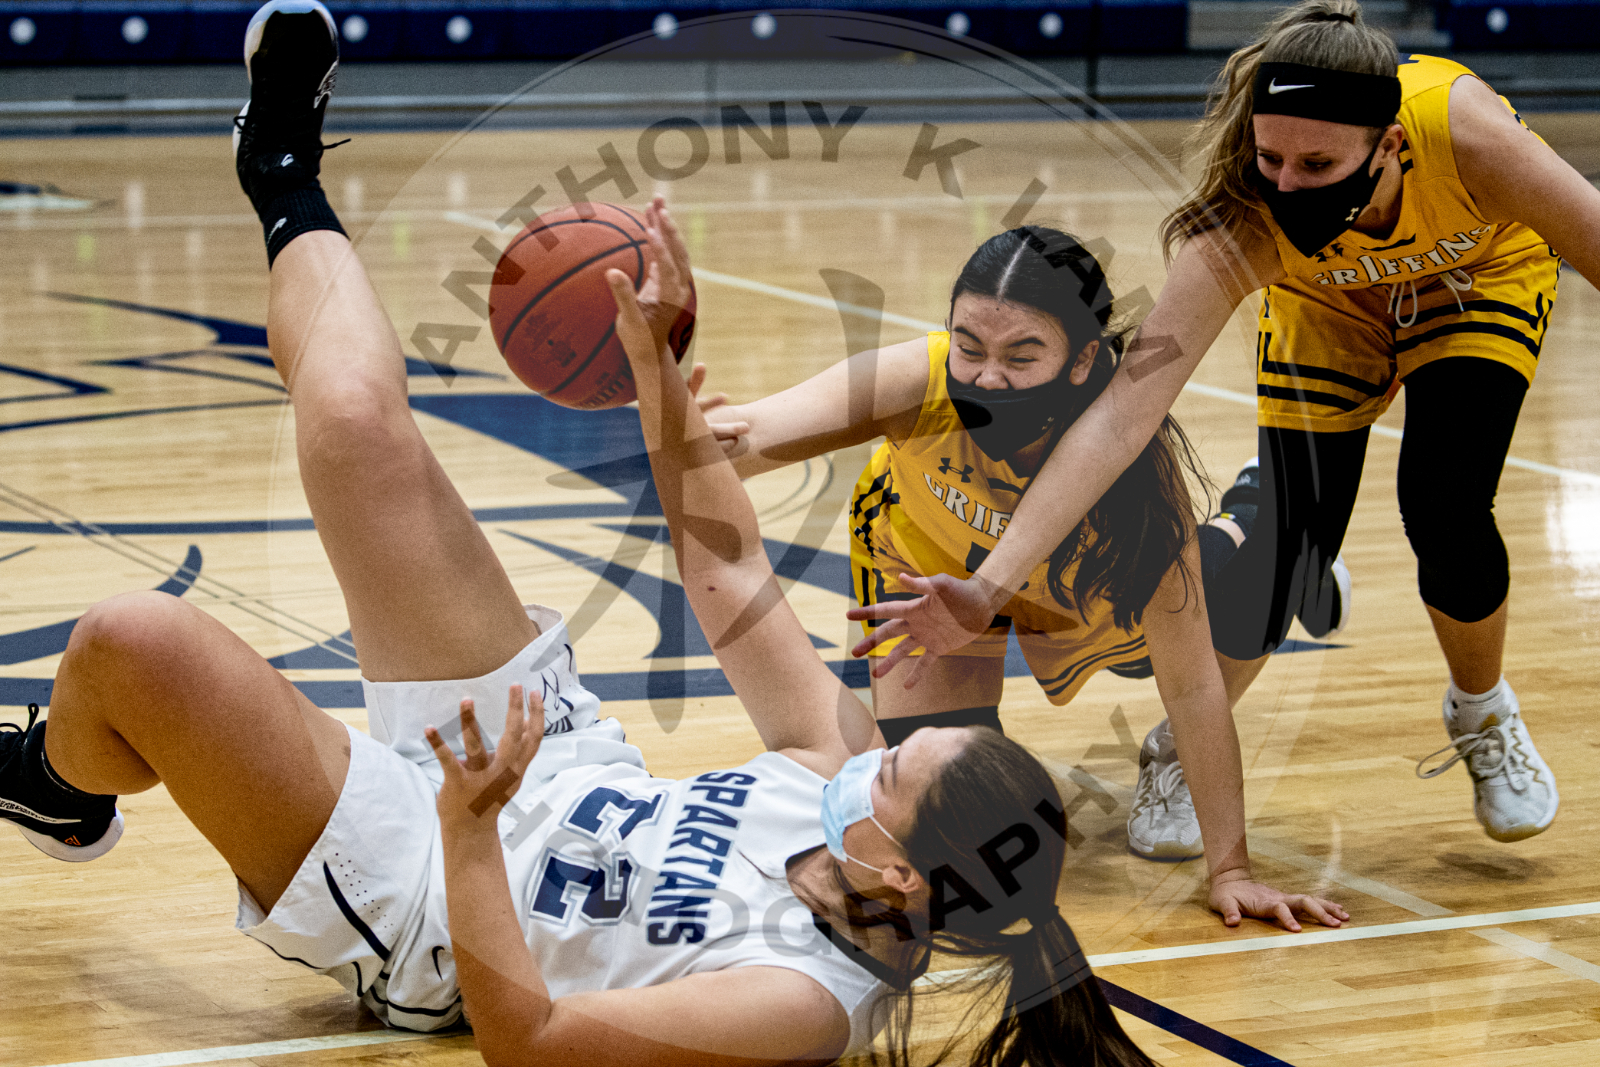 girls fight for loose ball